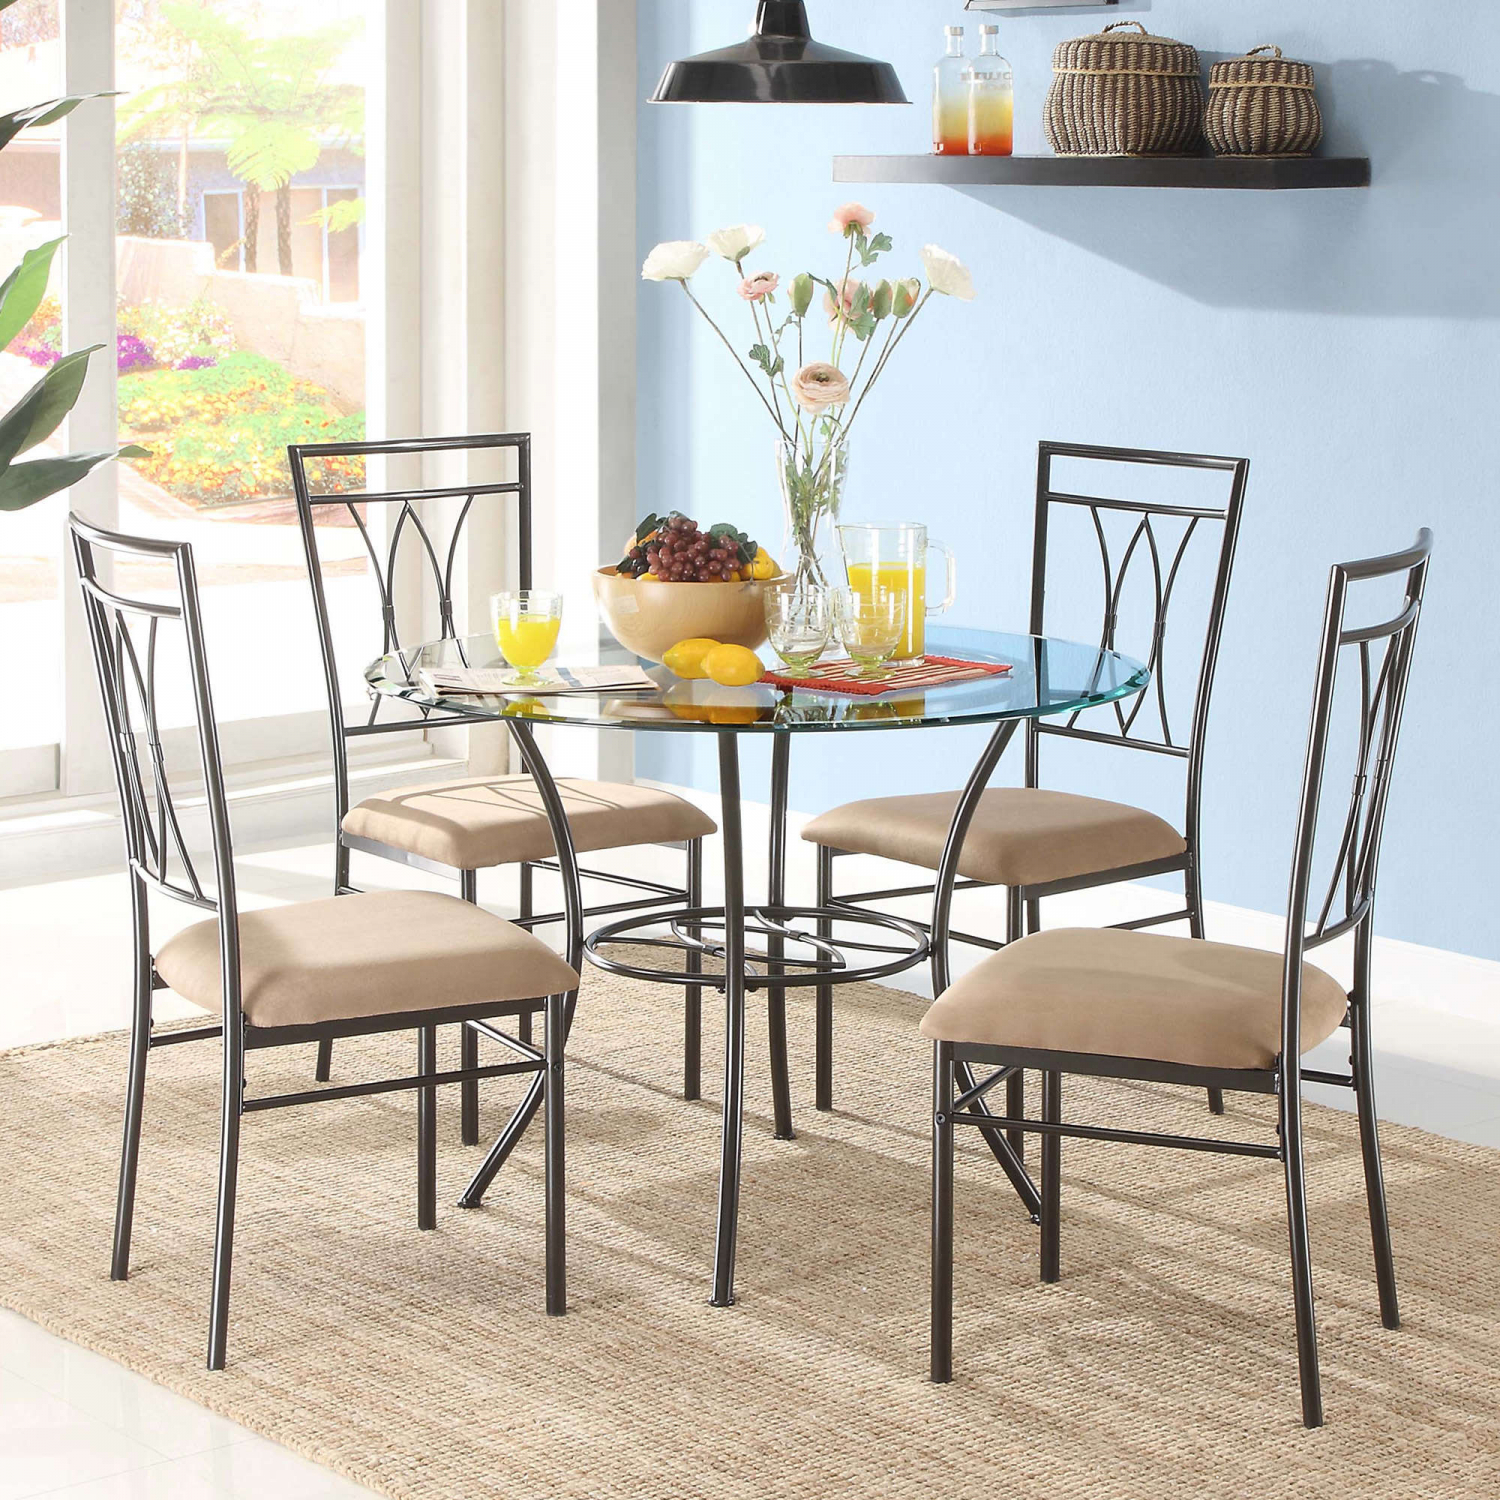 Details About 5 Piece Glass And Metal Dining Set Kitchen Dining Room Dinette Table And Chairs